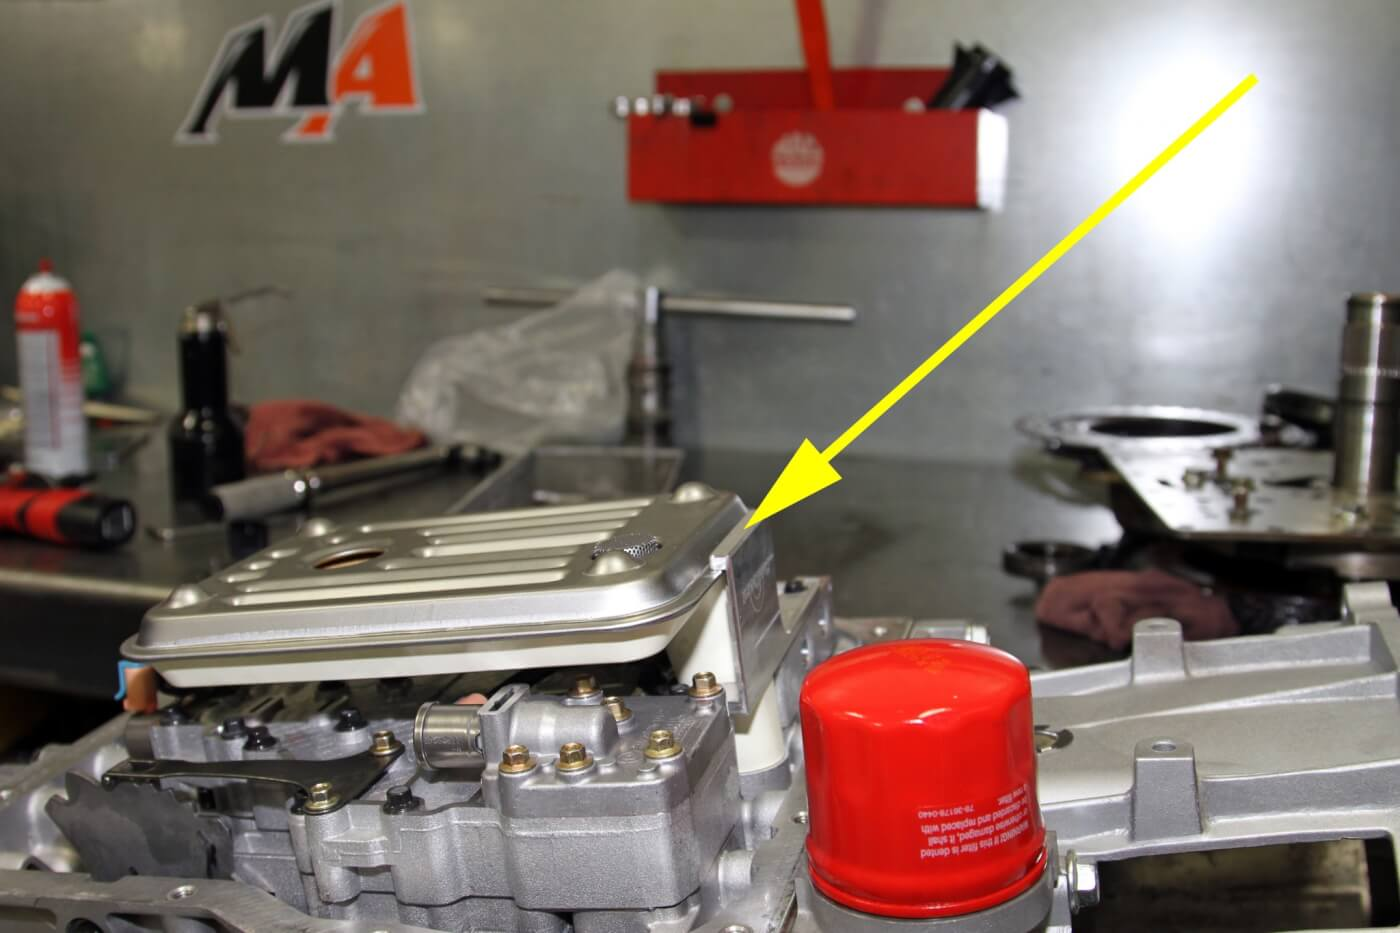 Since they use an Allison deep transmission pan and filter on the MA450  transmission